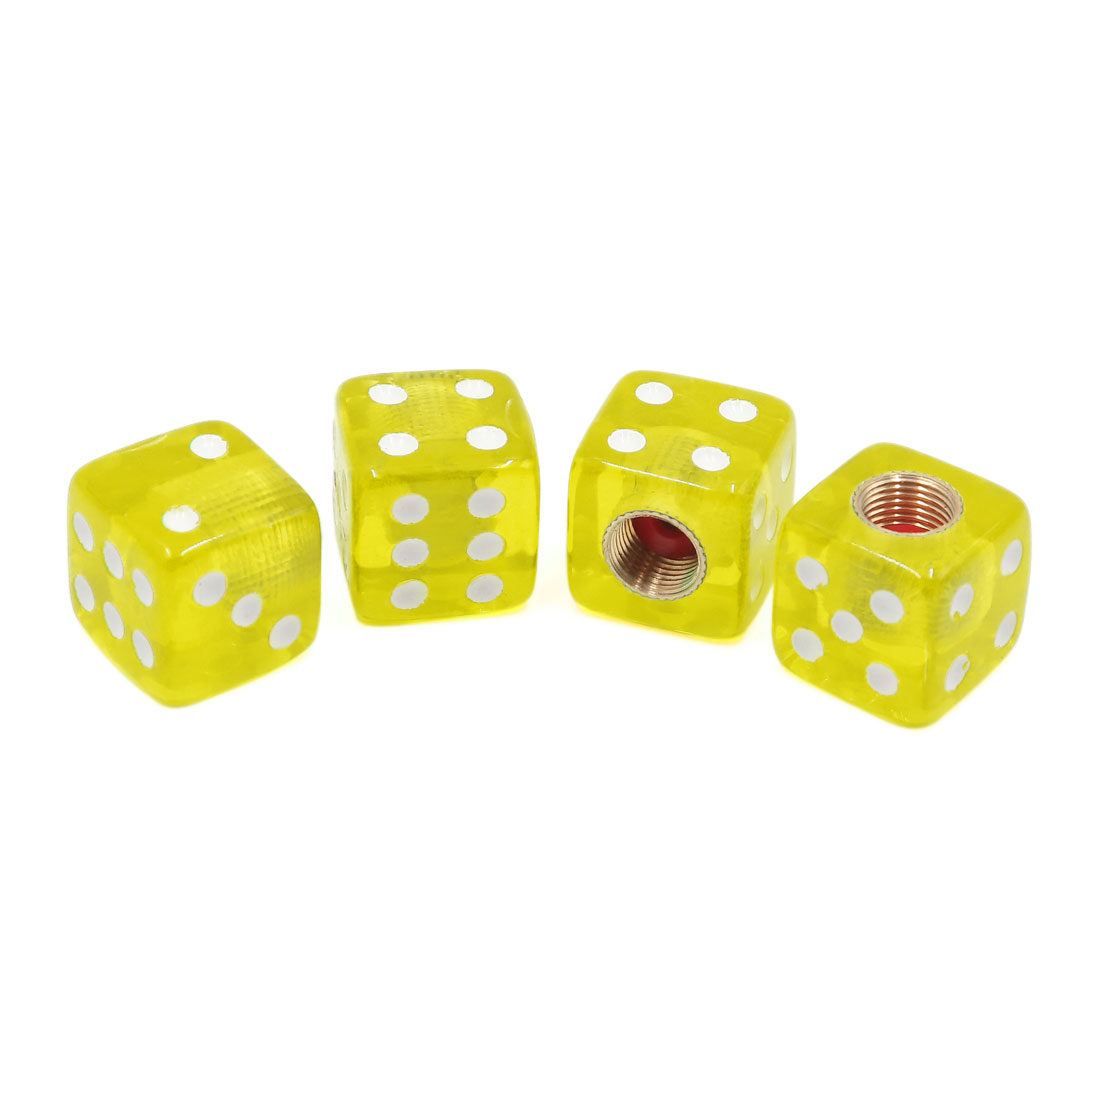 4pcs Yellow Dice Shaped Design Vehicle Car Tire Tyre Valve Protective Cap Cover